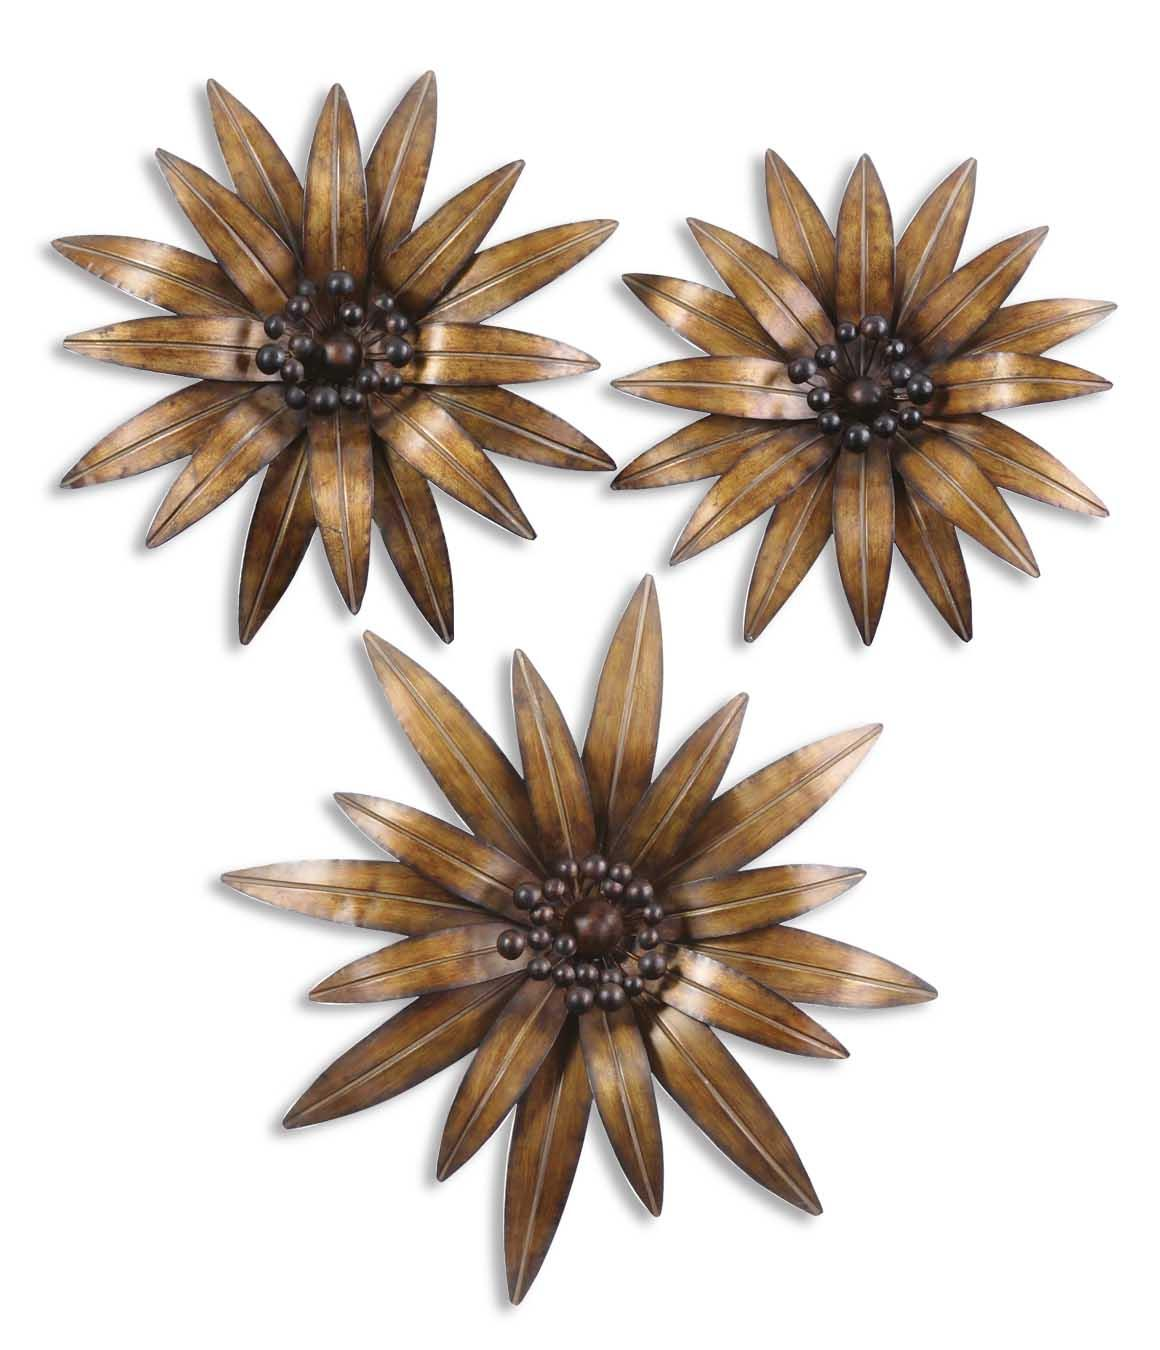 Uttermost Alternative Wall Decor Golden Gazanias Set of 3 - Item Number: 13479